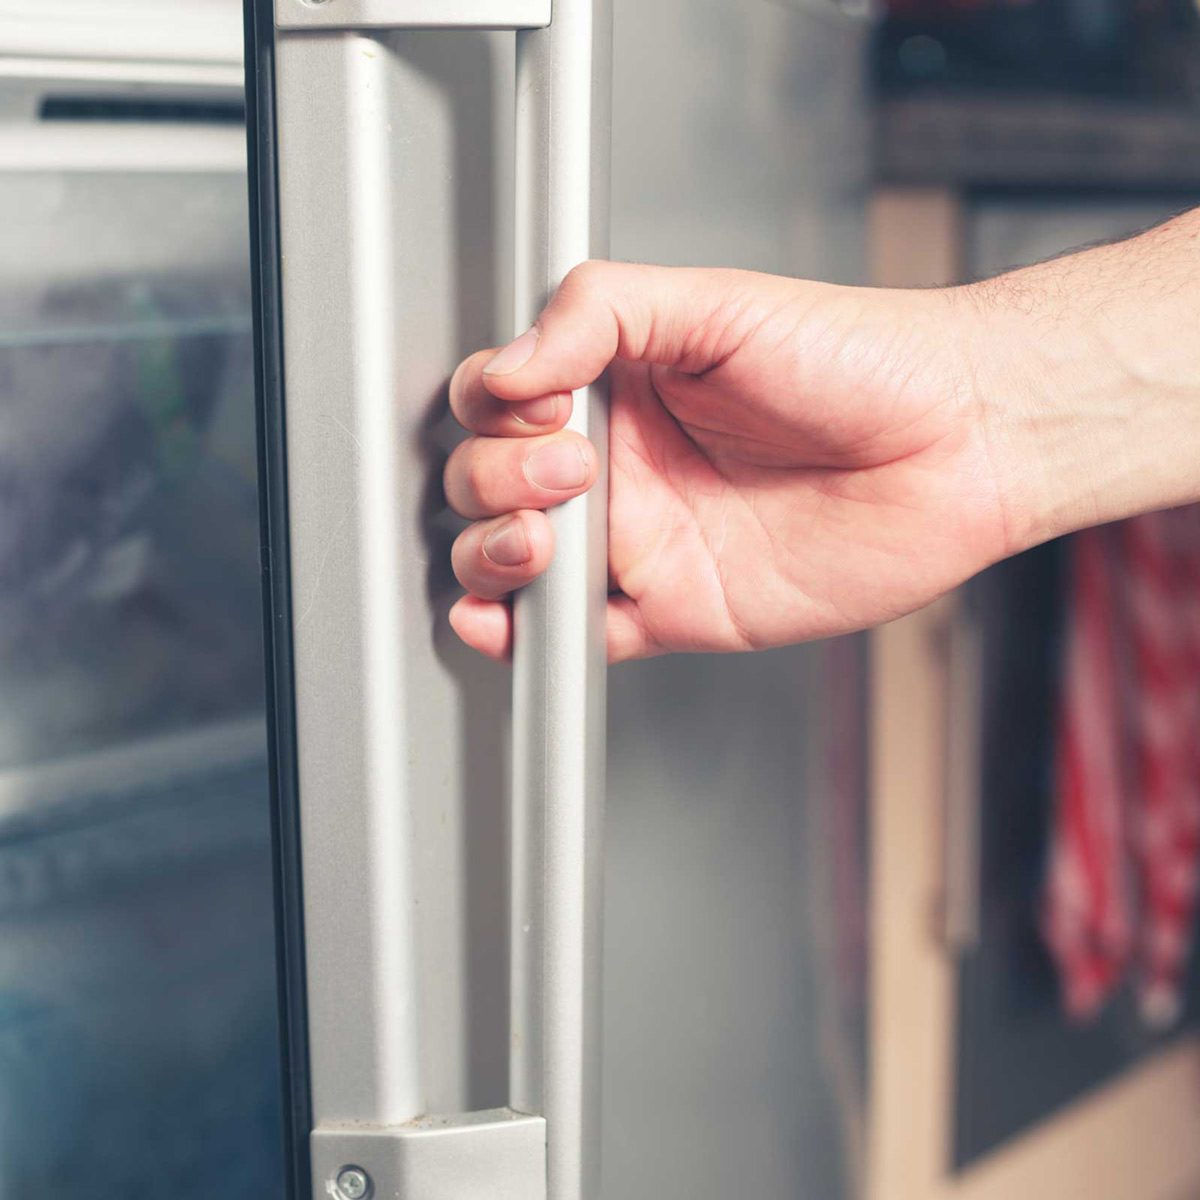 fridge handle